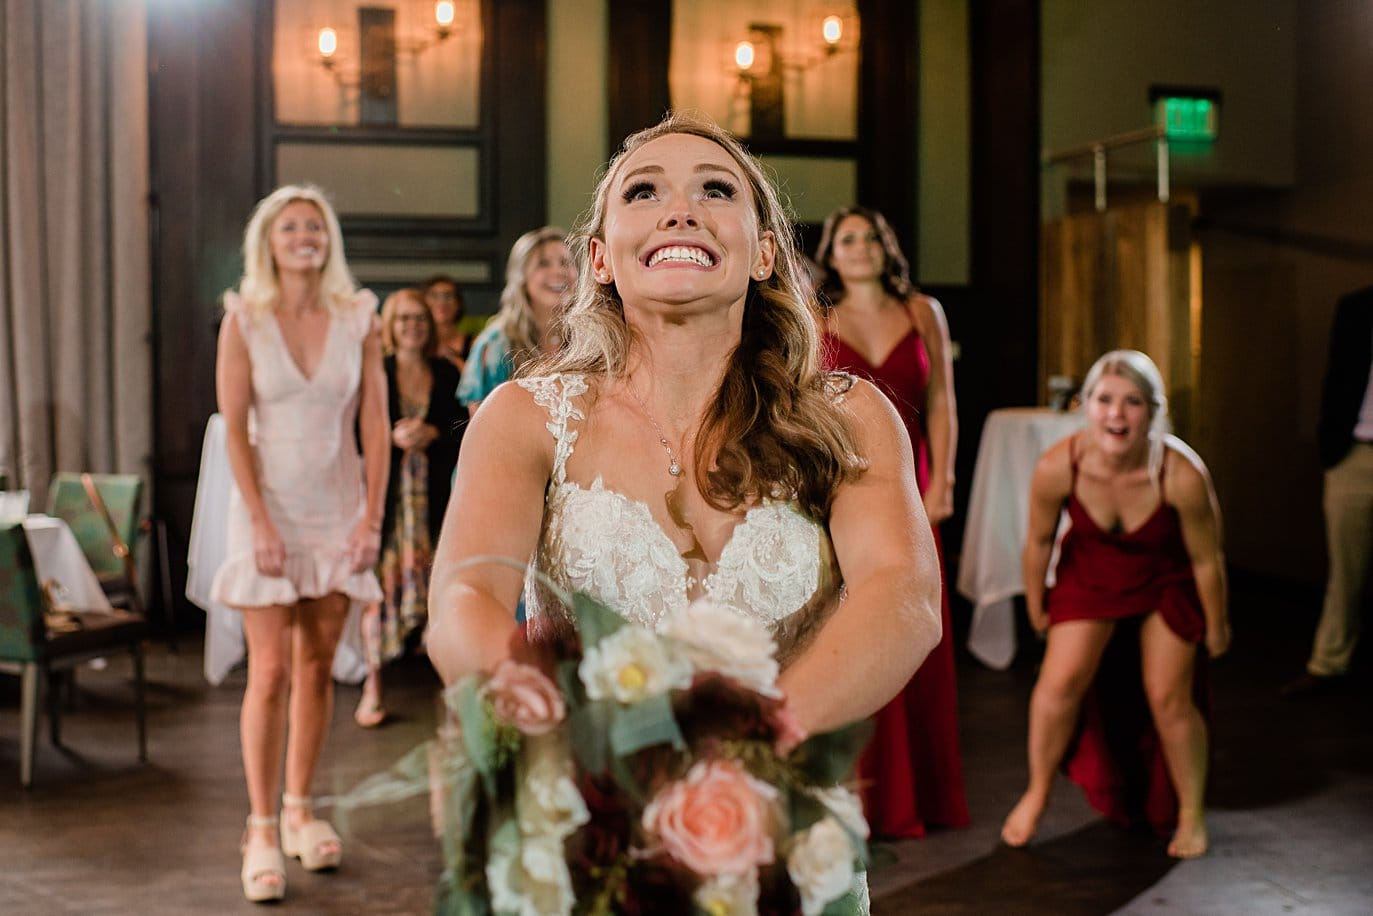 bride bouquet toss at Vail Manor Lodge wedding by Aspen wedding photographer Jennie Crate